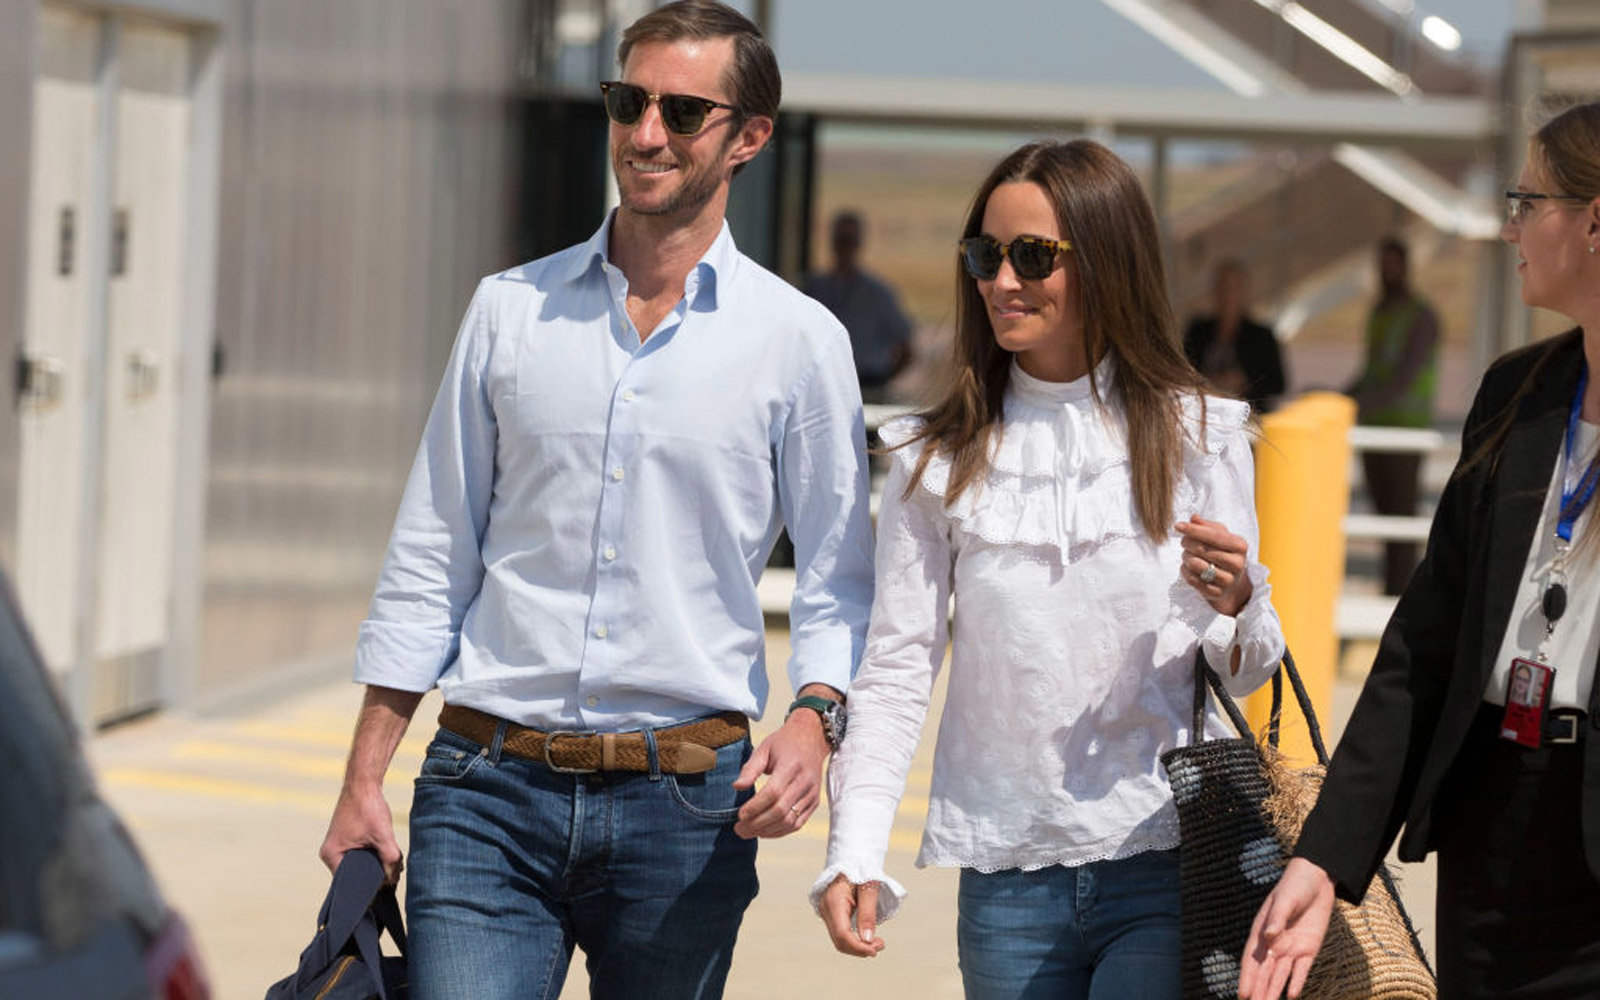 JUNE 1, 2017: DARWIN, NT - (EUROPE AND AUSTRALASIA OUT)  Newly married James Matthews and Pippa Middleton arrive into Darwin International Airport in Darwin, Northern Territory. (Photo by Glenn Campbell/Newspix/Getty Images)